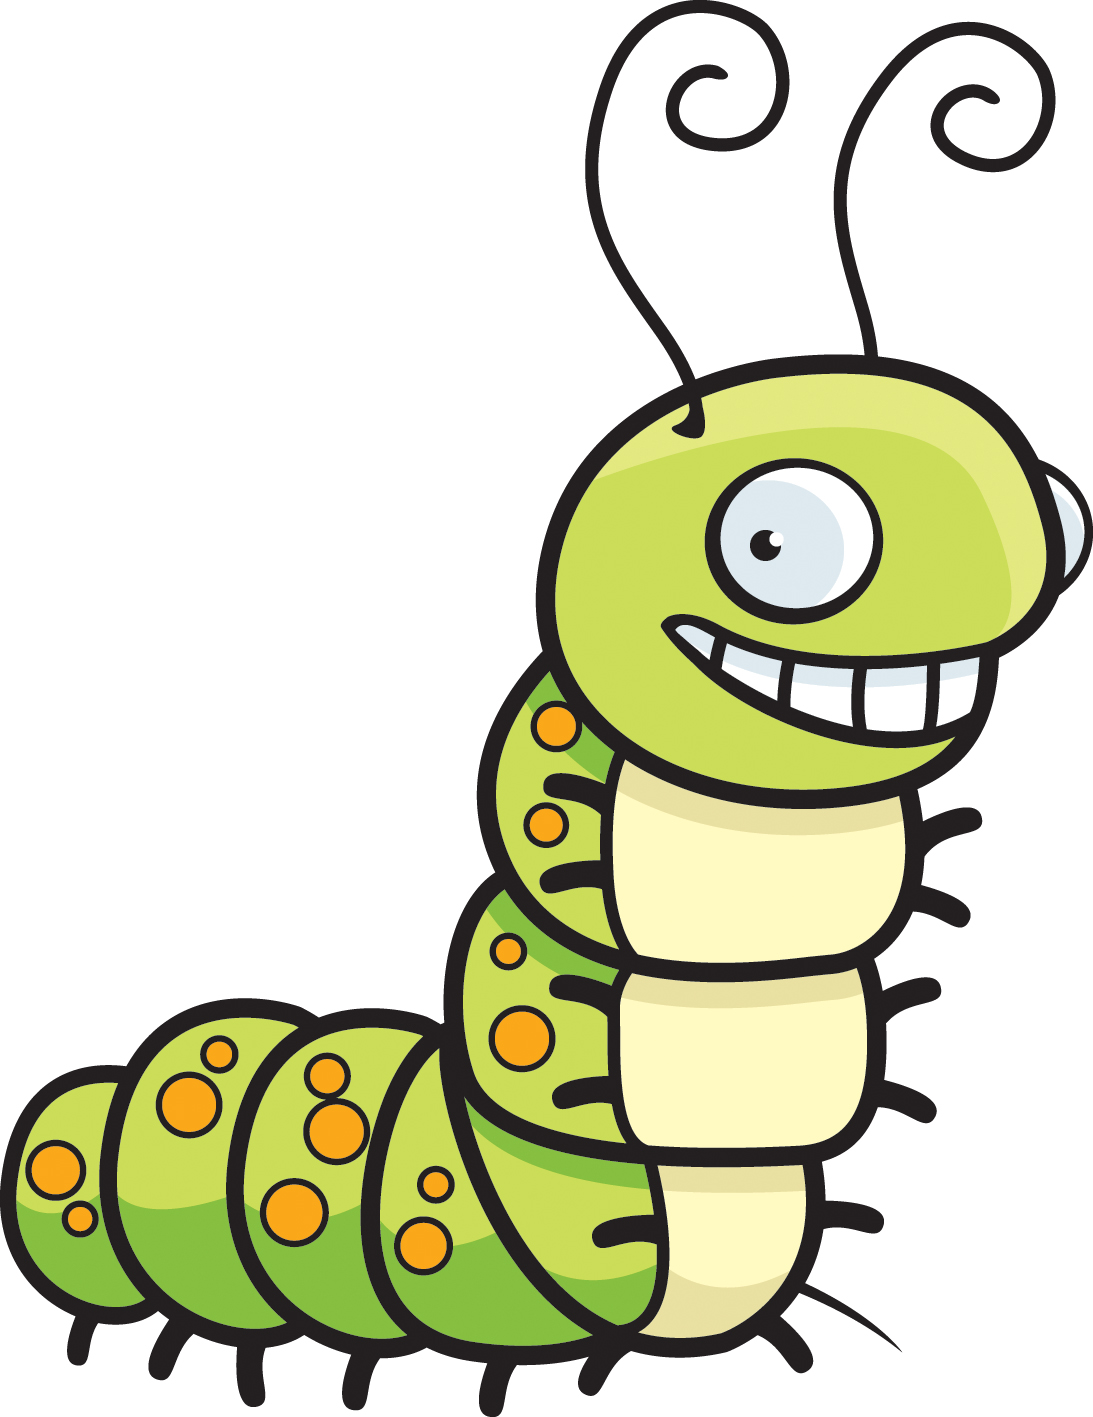 1599 Caterpillar free clipart.